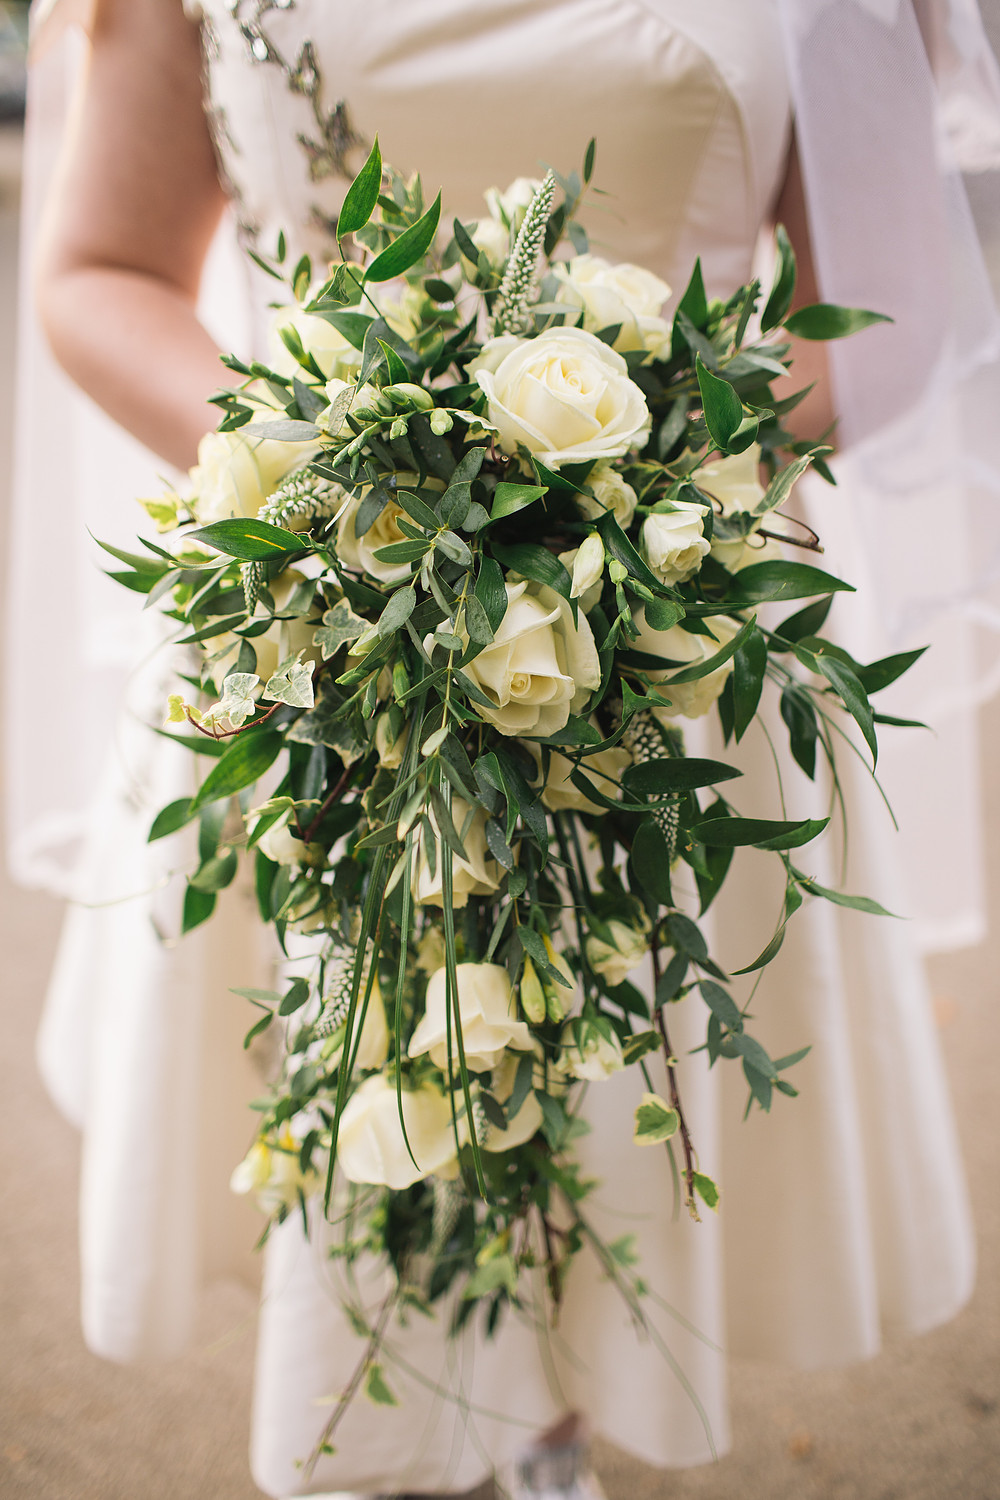 choose arm sheaf wedding bouquets for your wedding 6 - Choose Arm sheaf wedding bouquets for Your Wedding